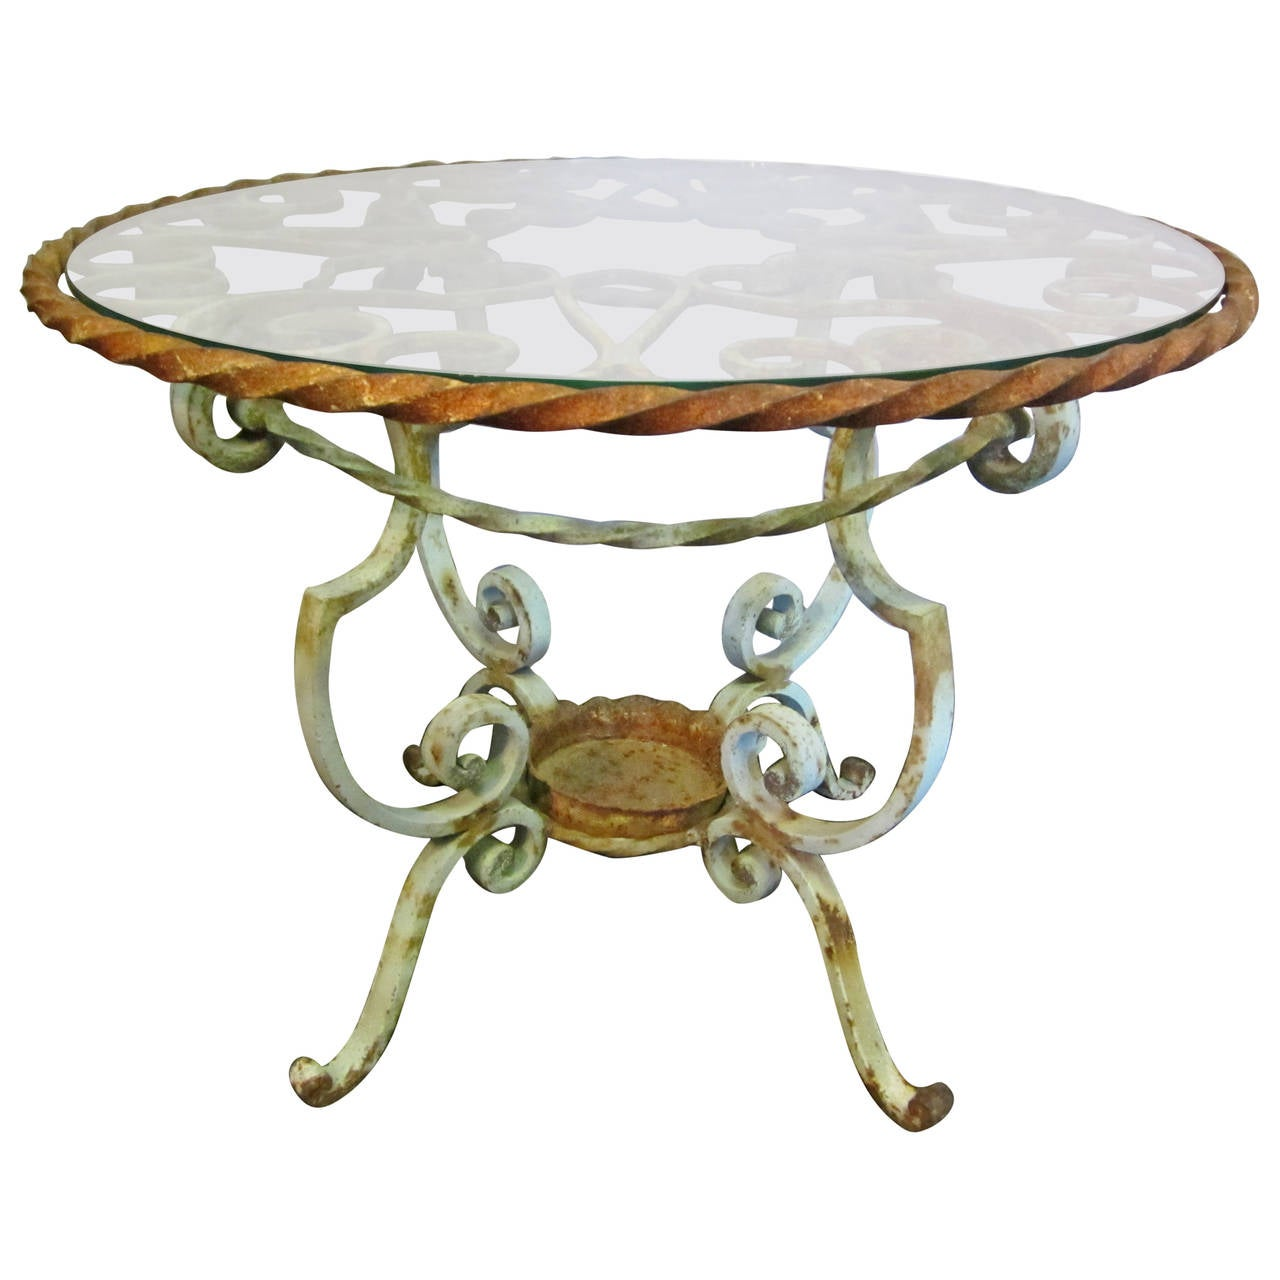 French Connection Gunmetal Coffee Table: 19th Century French Cast Iron Table With Glass Top At 1stdibs